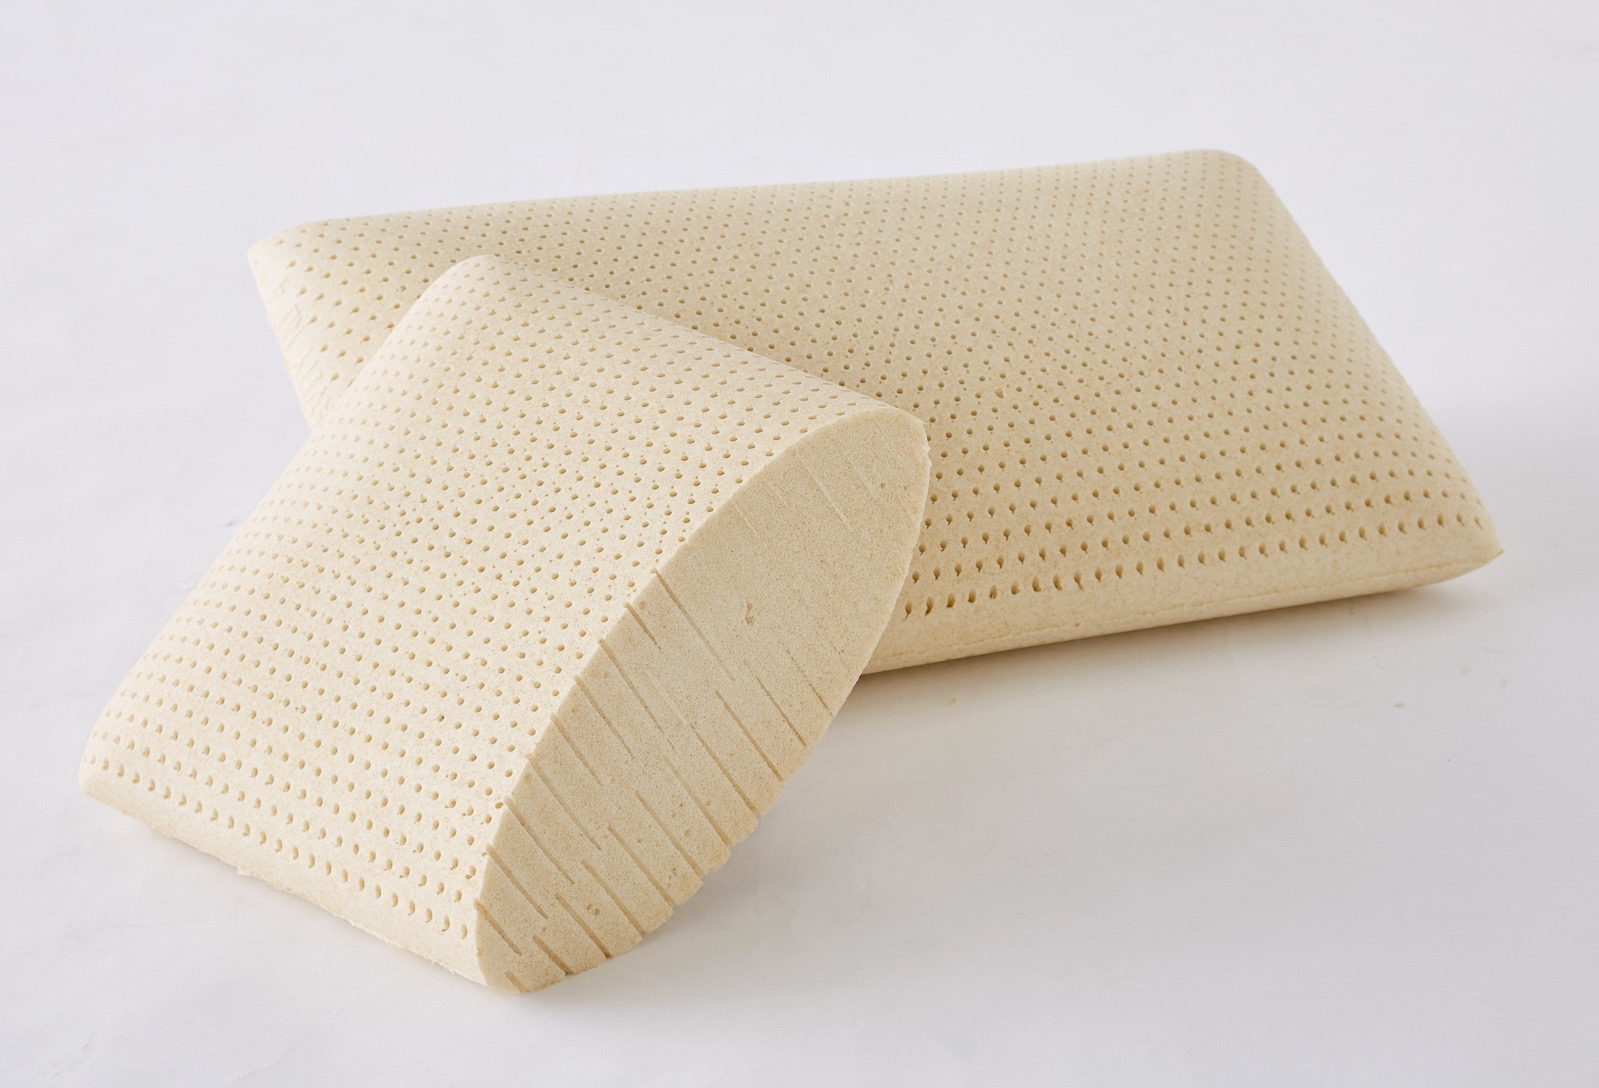 Firm Memory Foam Pillow Latex Foam Pillows Soft Medium Firm Latex Foam Pillows